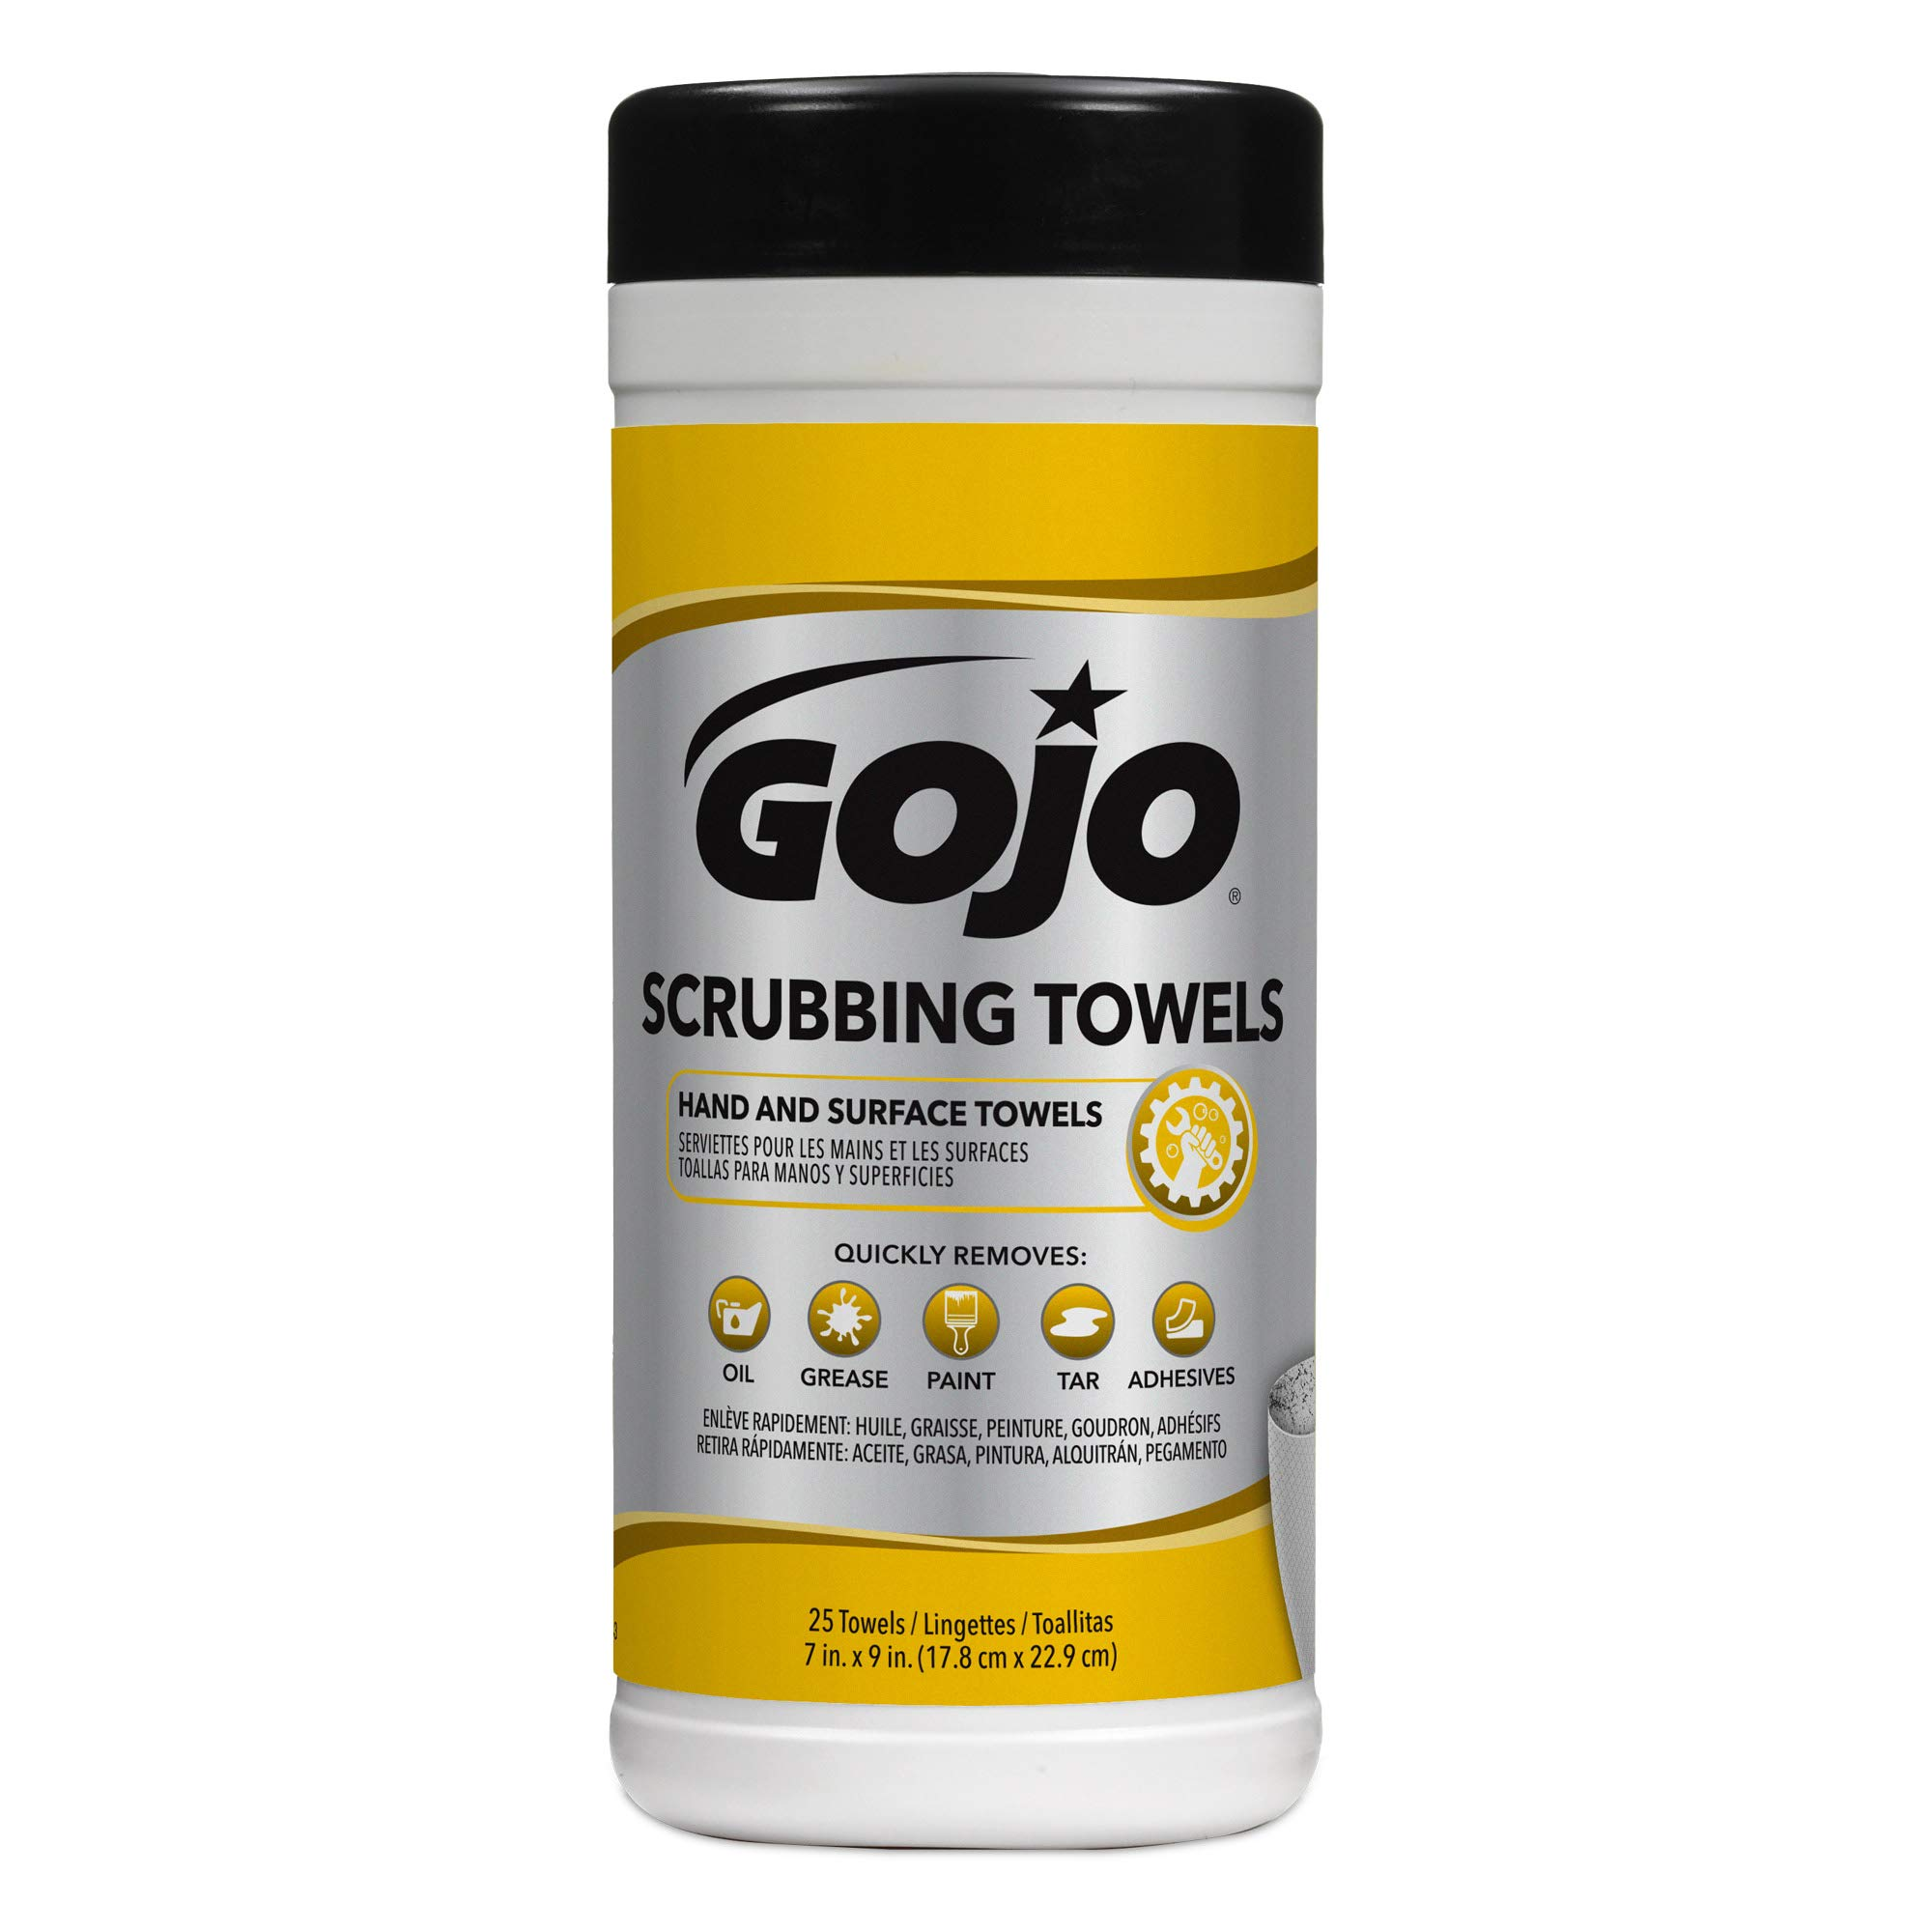 GOJO Scrubbing Towels, Fresh Citrus Scent, 25 Count Extra-Large Textured Wet Scrubbing Towels Canisters (Case of 6) - 6383-06 by Gojo (Image #2)